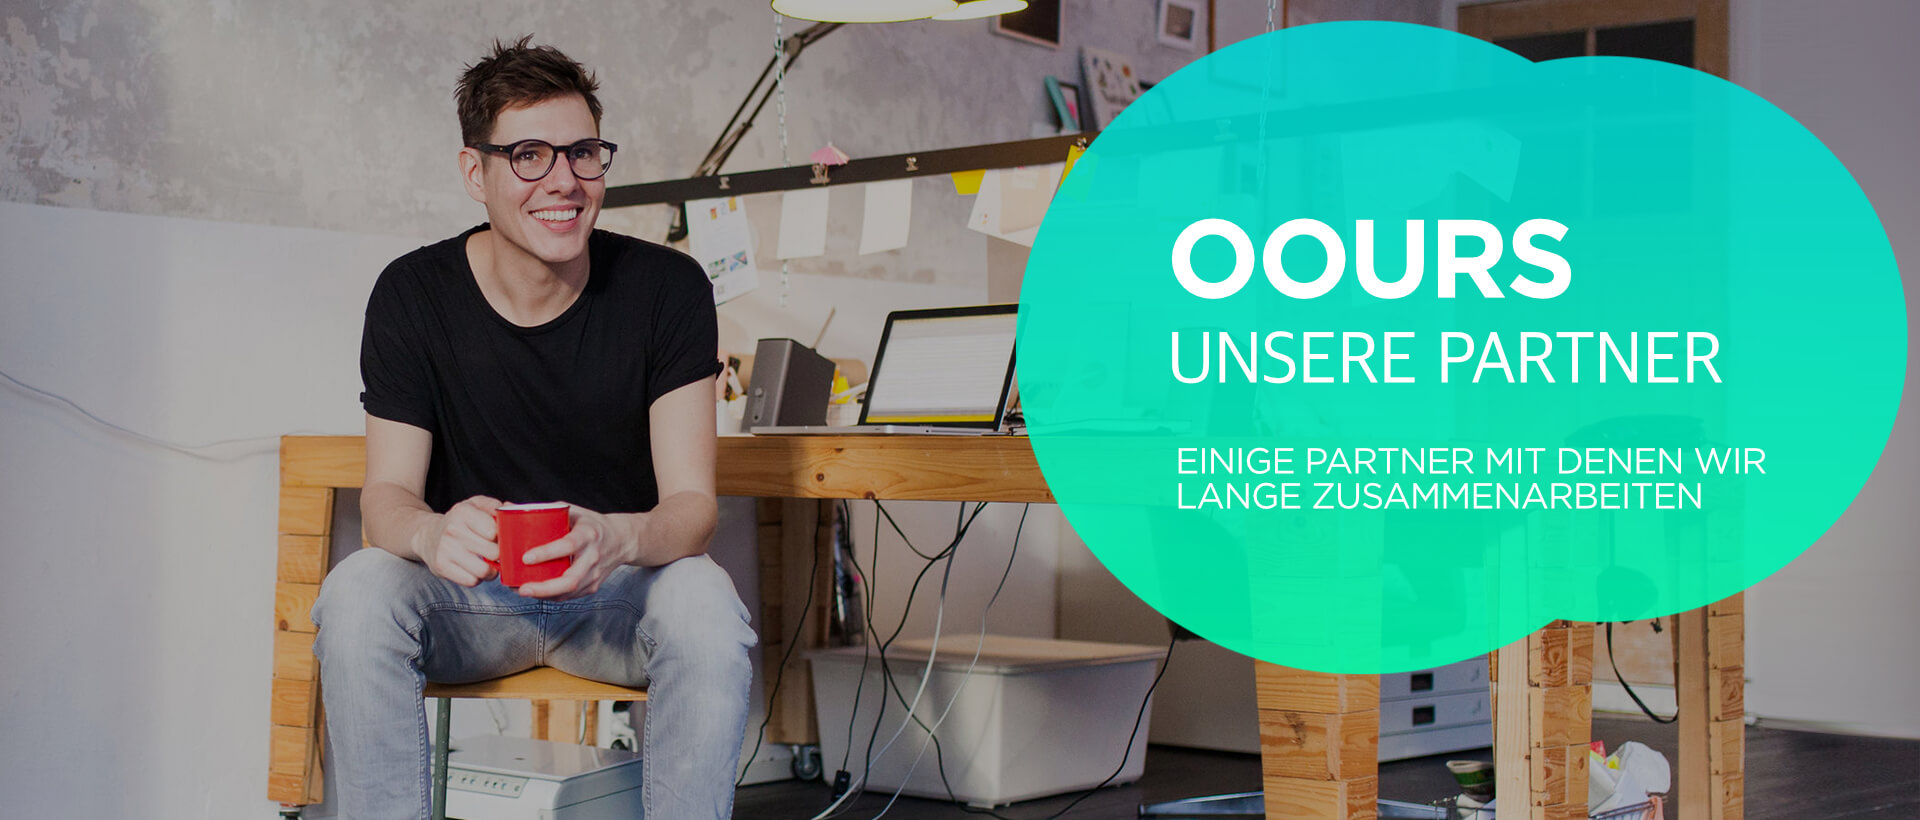 OOURS Unsere Partner